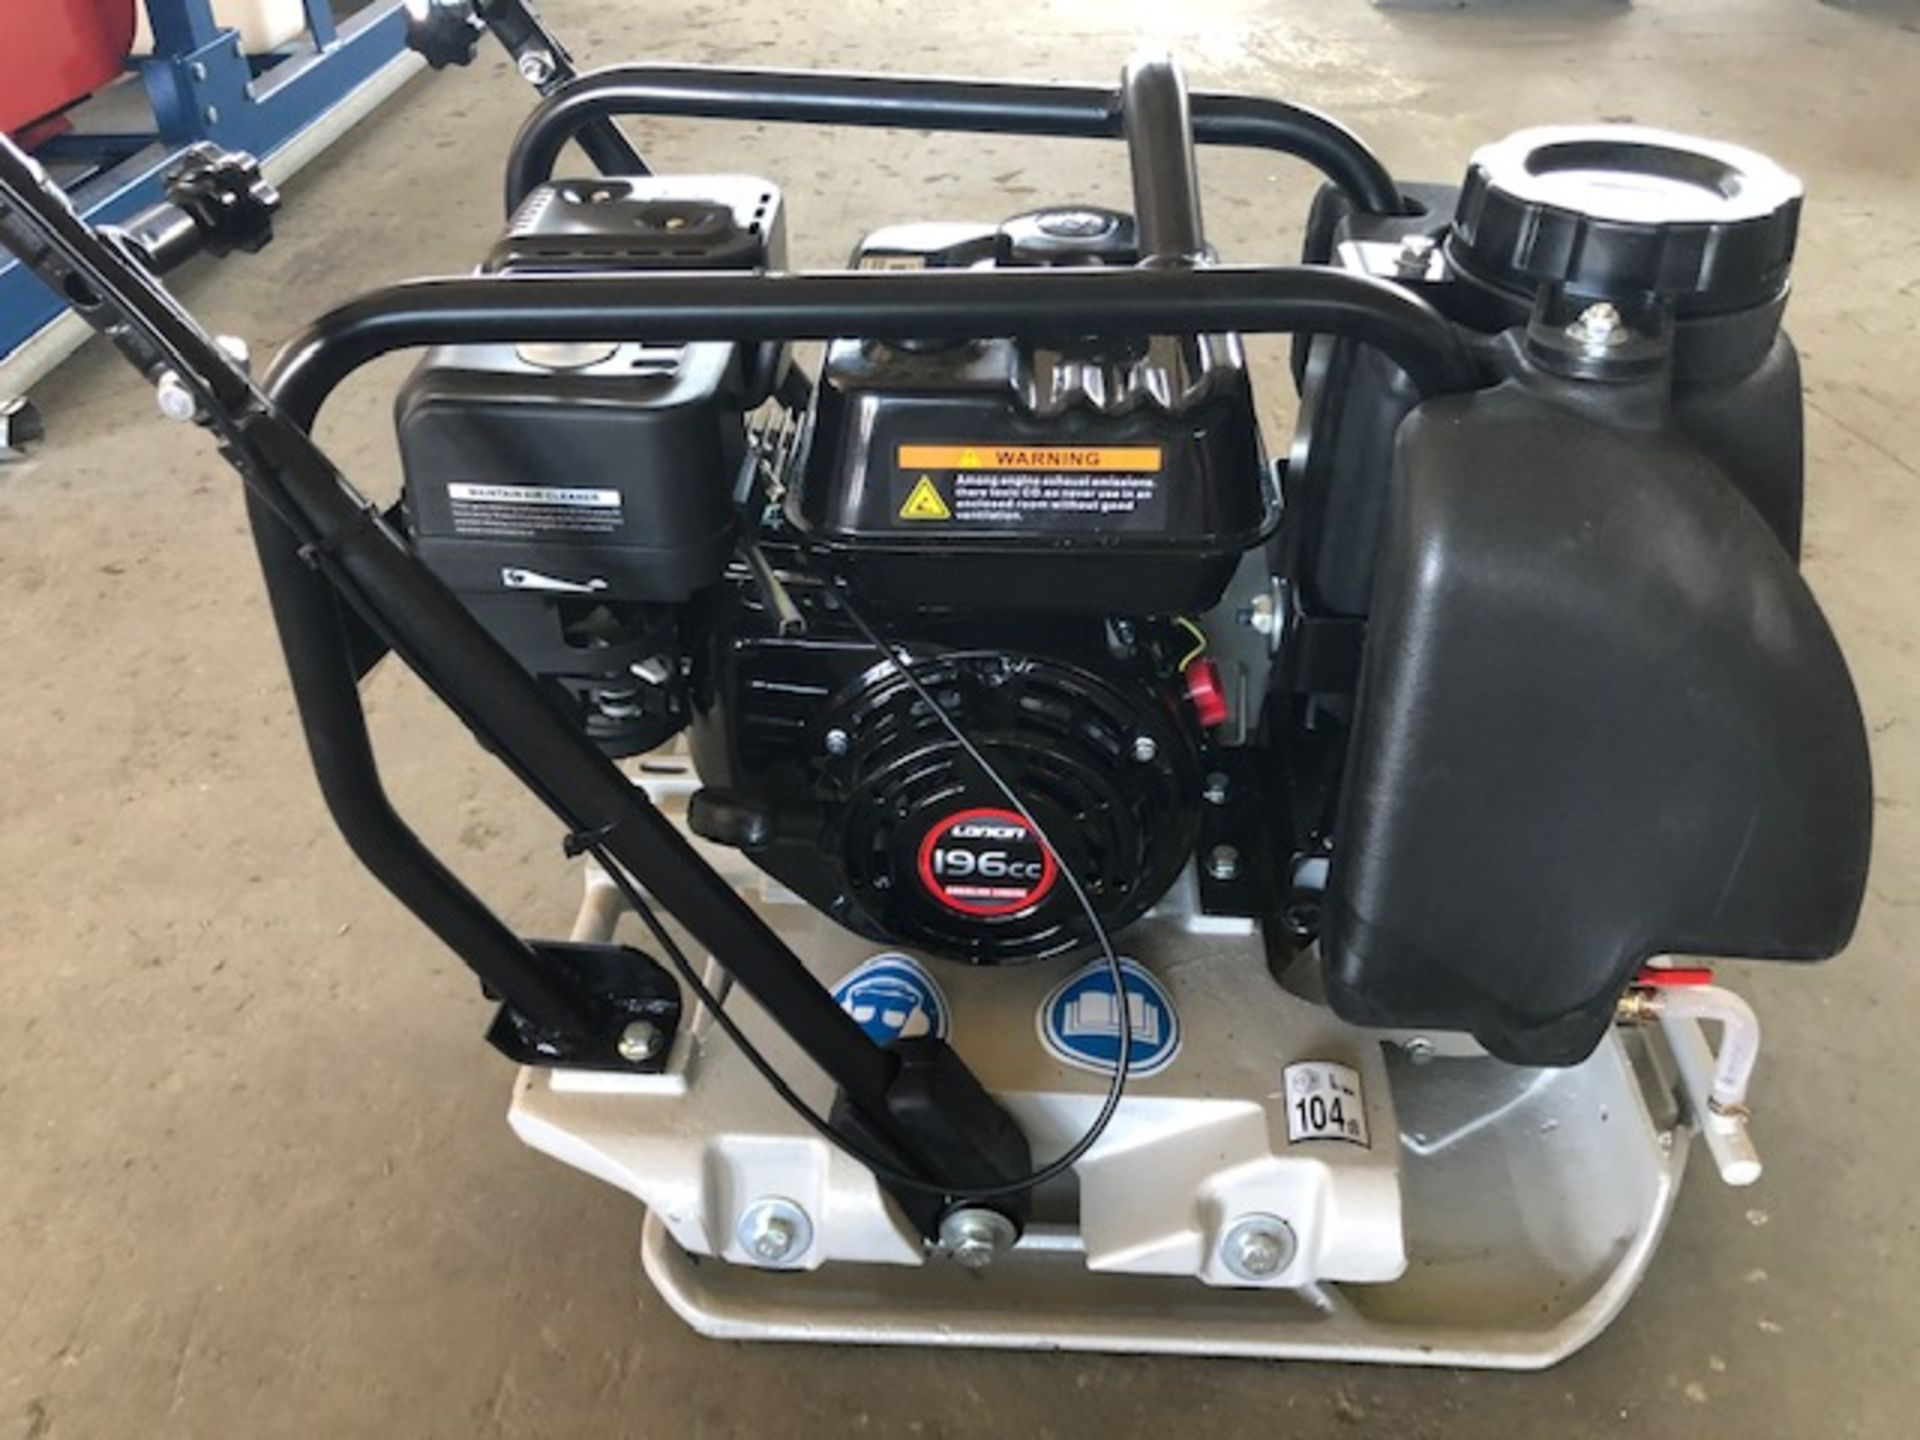 Lot 6 - 2020 Mustang LF-88 Plate Compactor